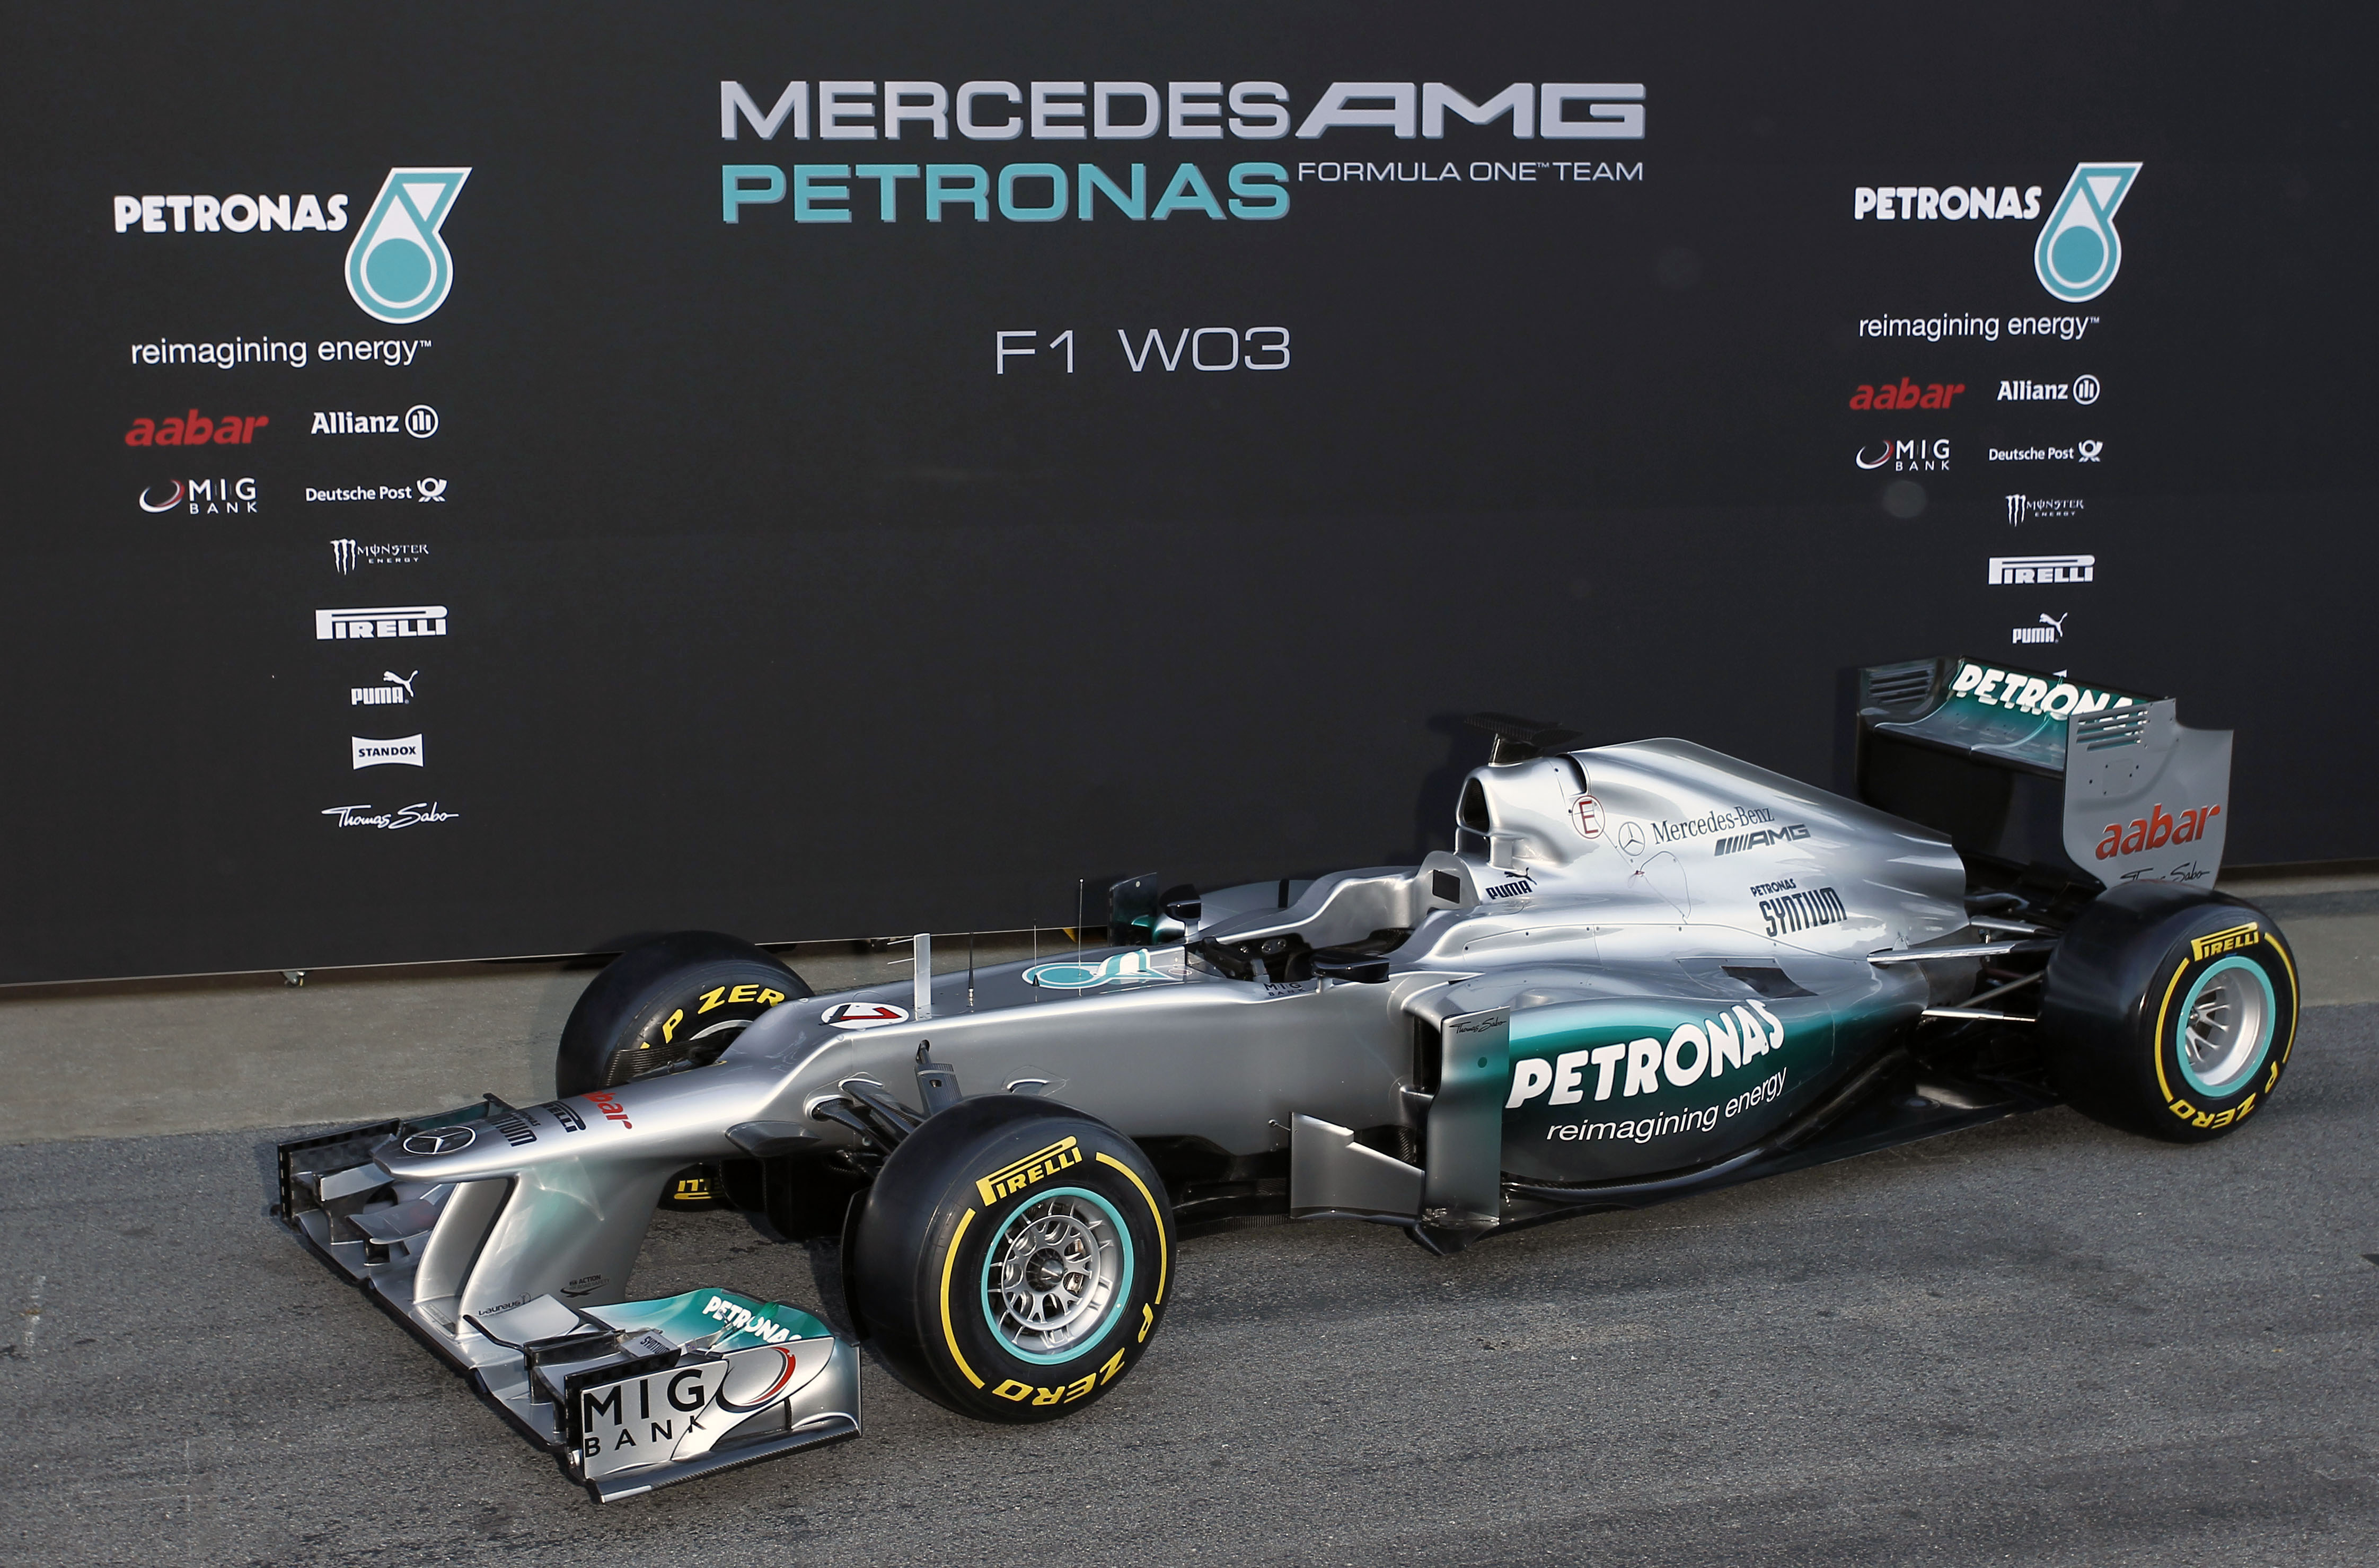 Mercedes Present The F1 W03 Themotorsportarchive Com